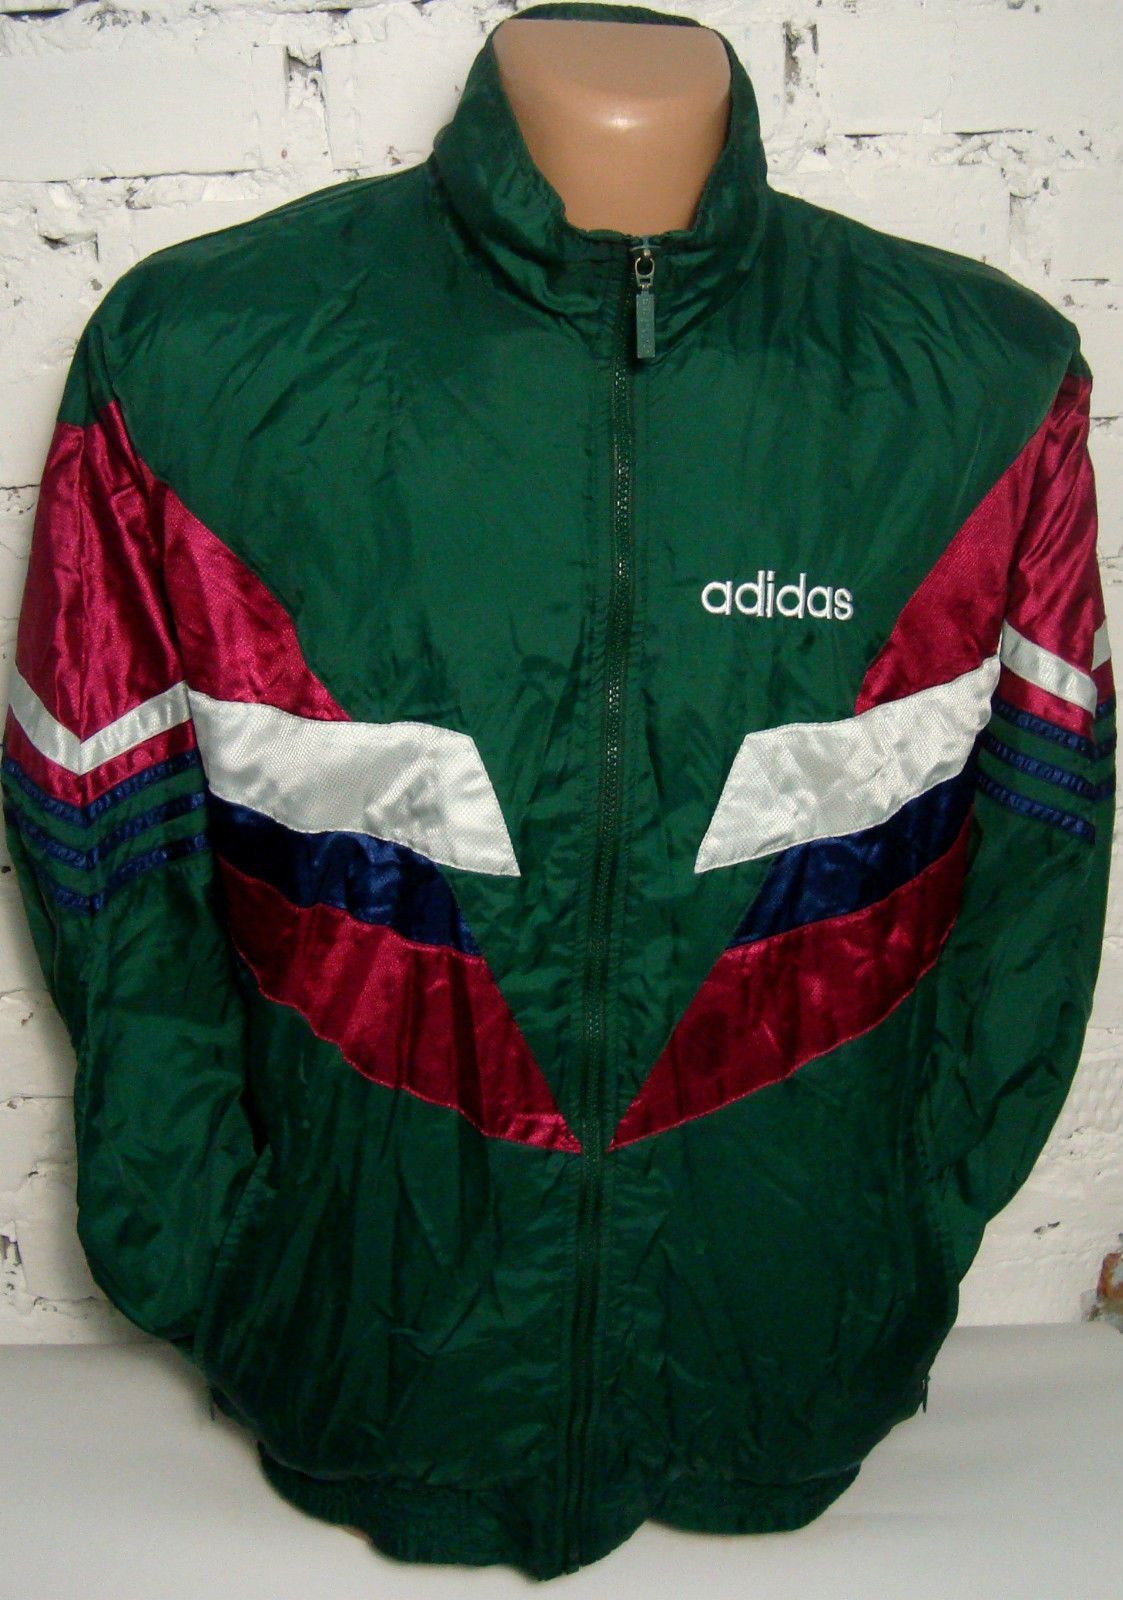 Retro at it's best, a true high quality Adidas item. Well